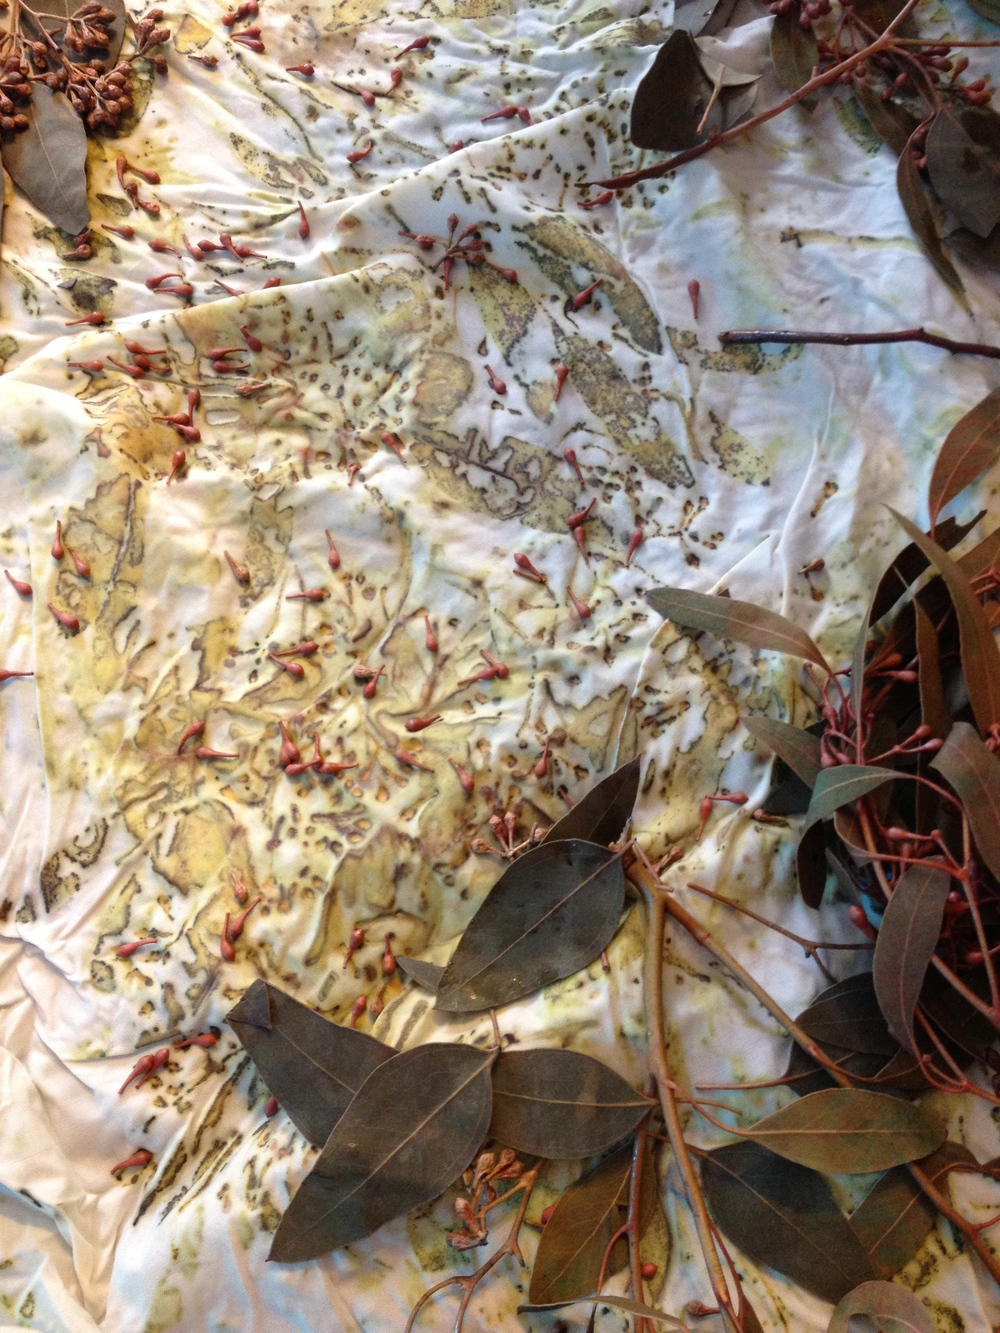 Seeded eucalyptus on spun silk broadcloth, hot mordanted with alum, iron and copper.   Print by P. J. Z.